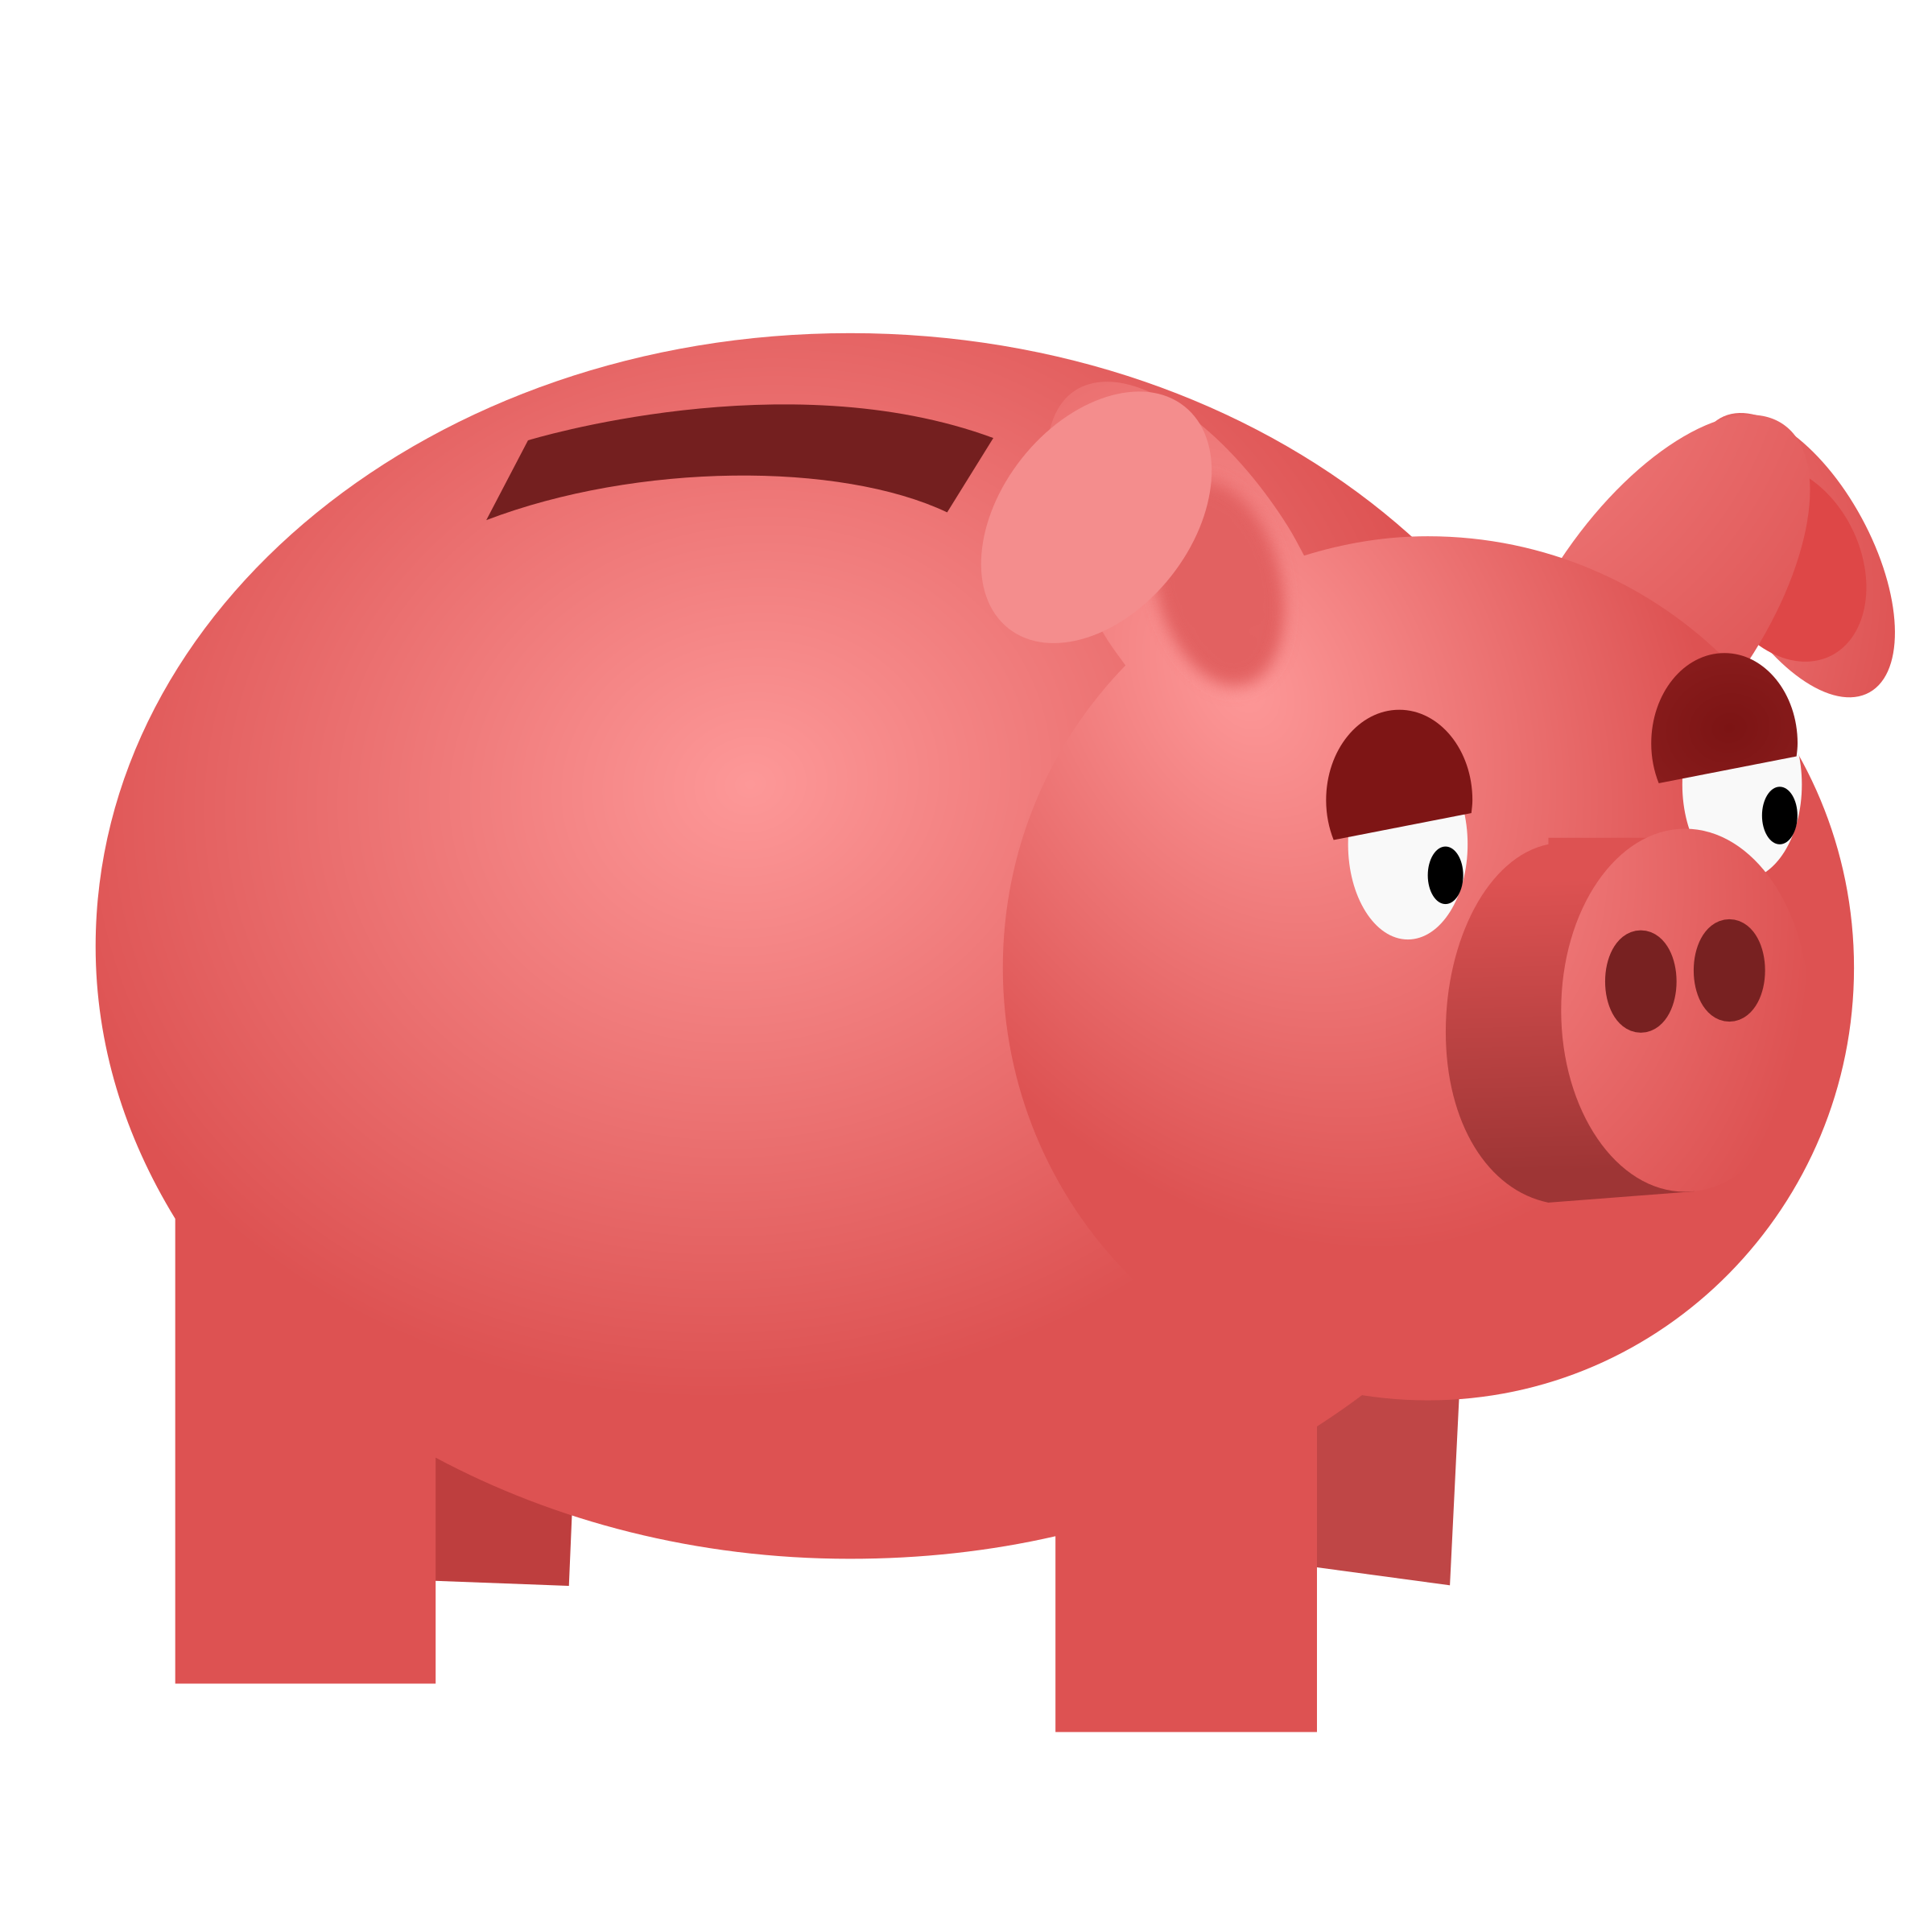 Piggy bank by vokimon